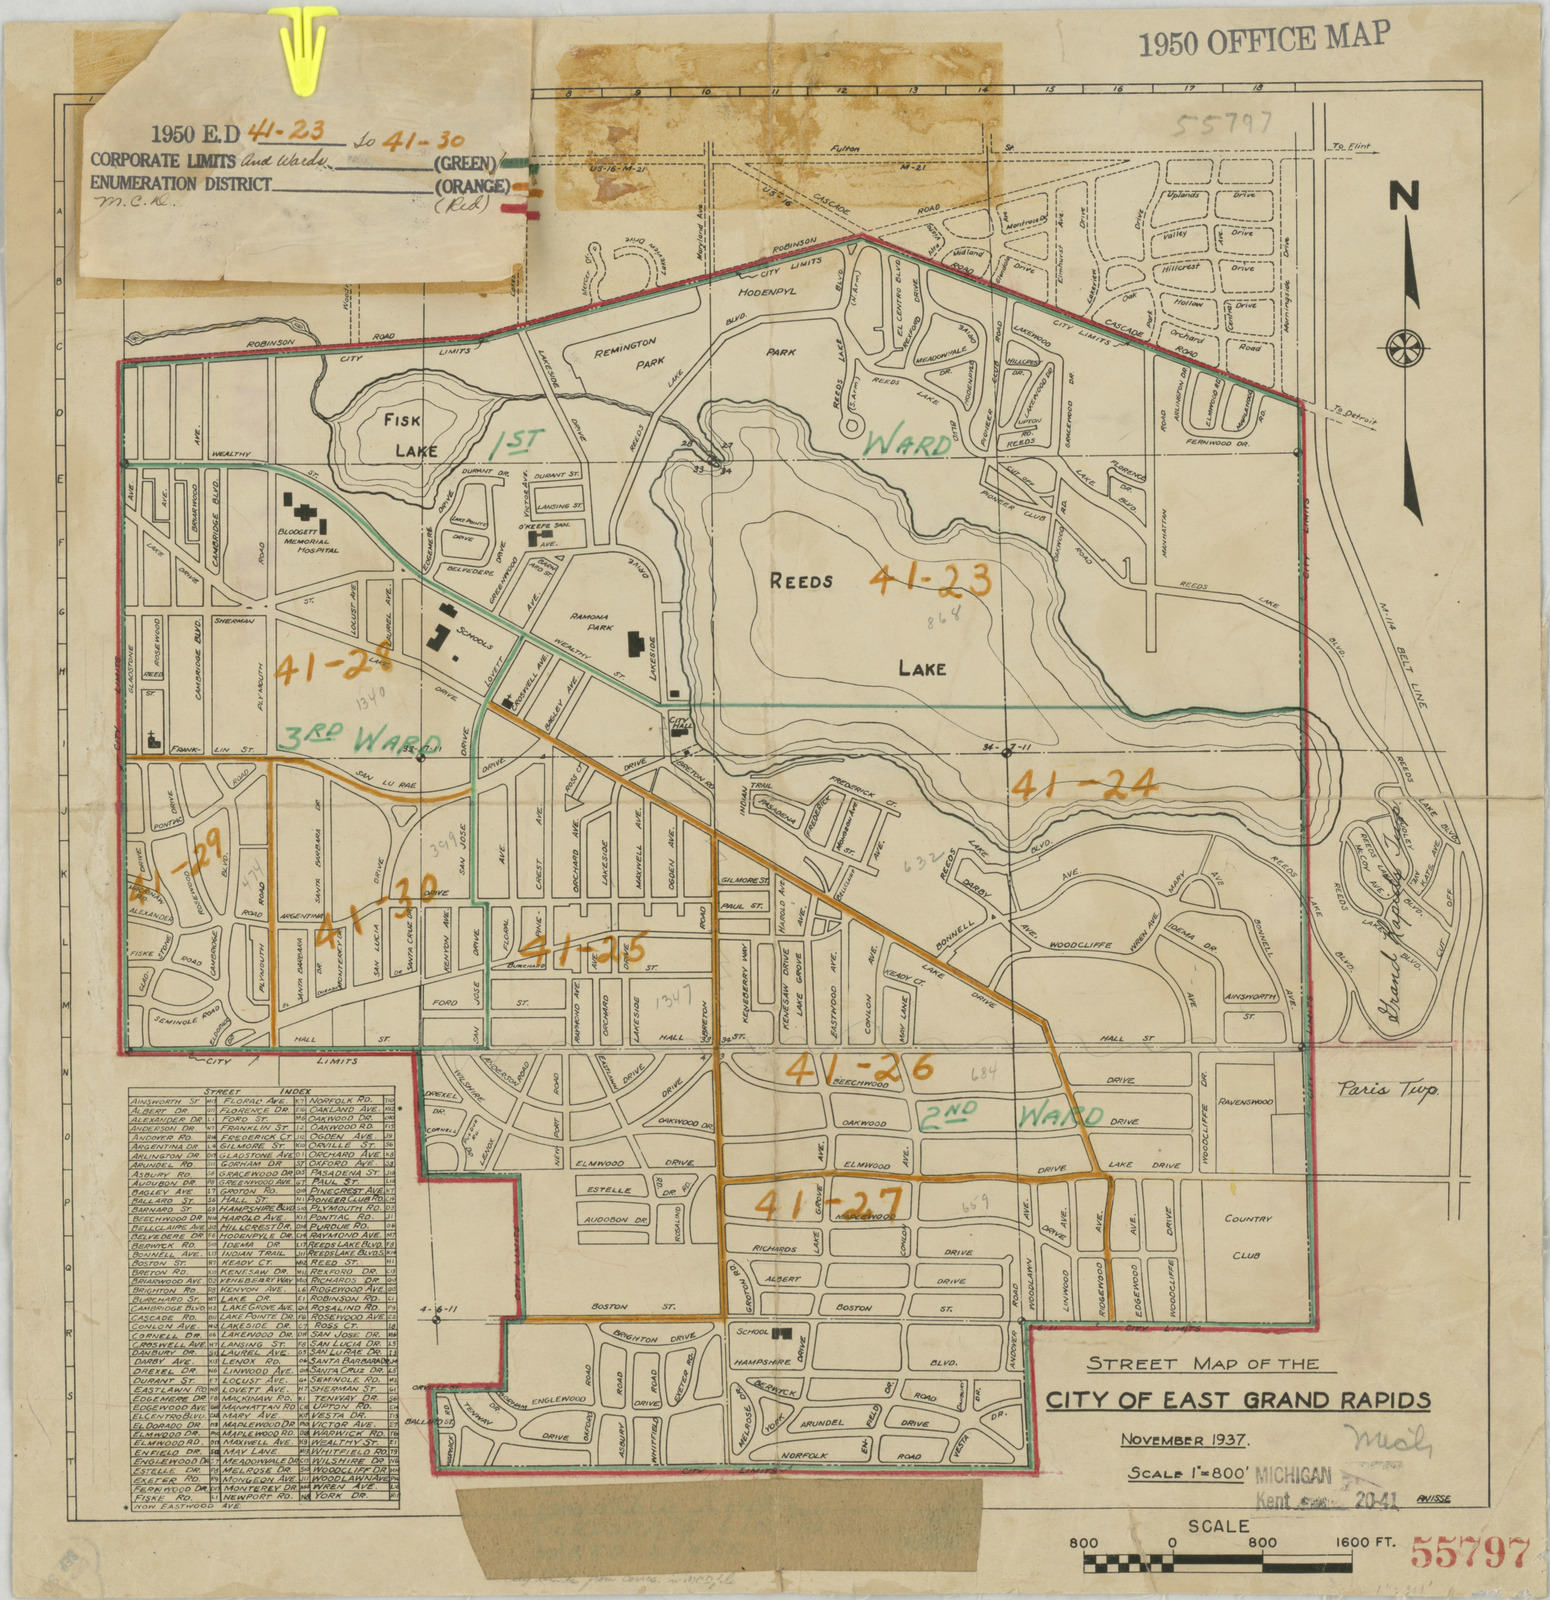 1950 Census Enumeration District Maps Michigan Mi Kent County East Grand Rapids Ed 41 23 To 30 U S National Archives Public Domain Image